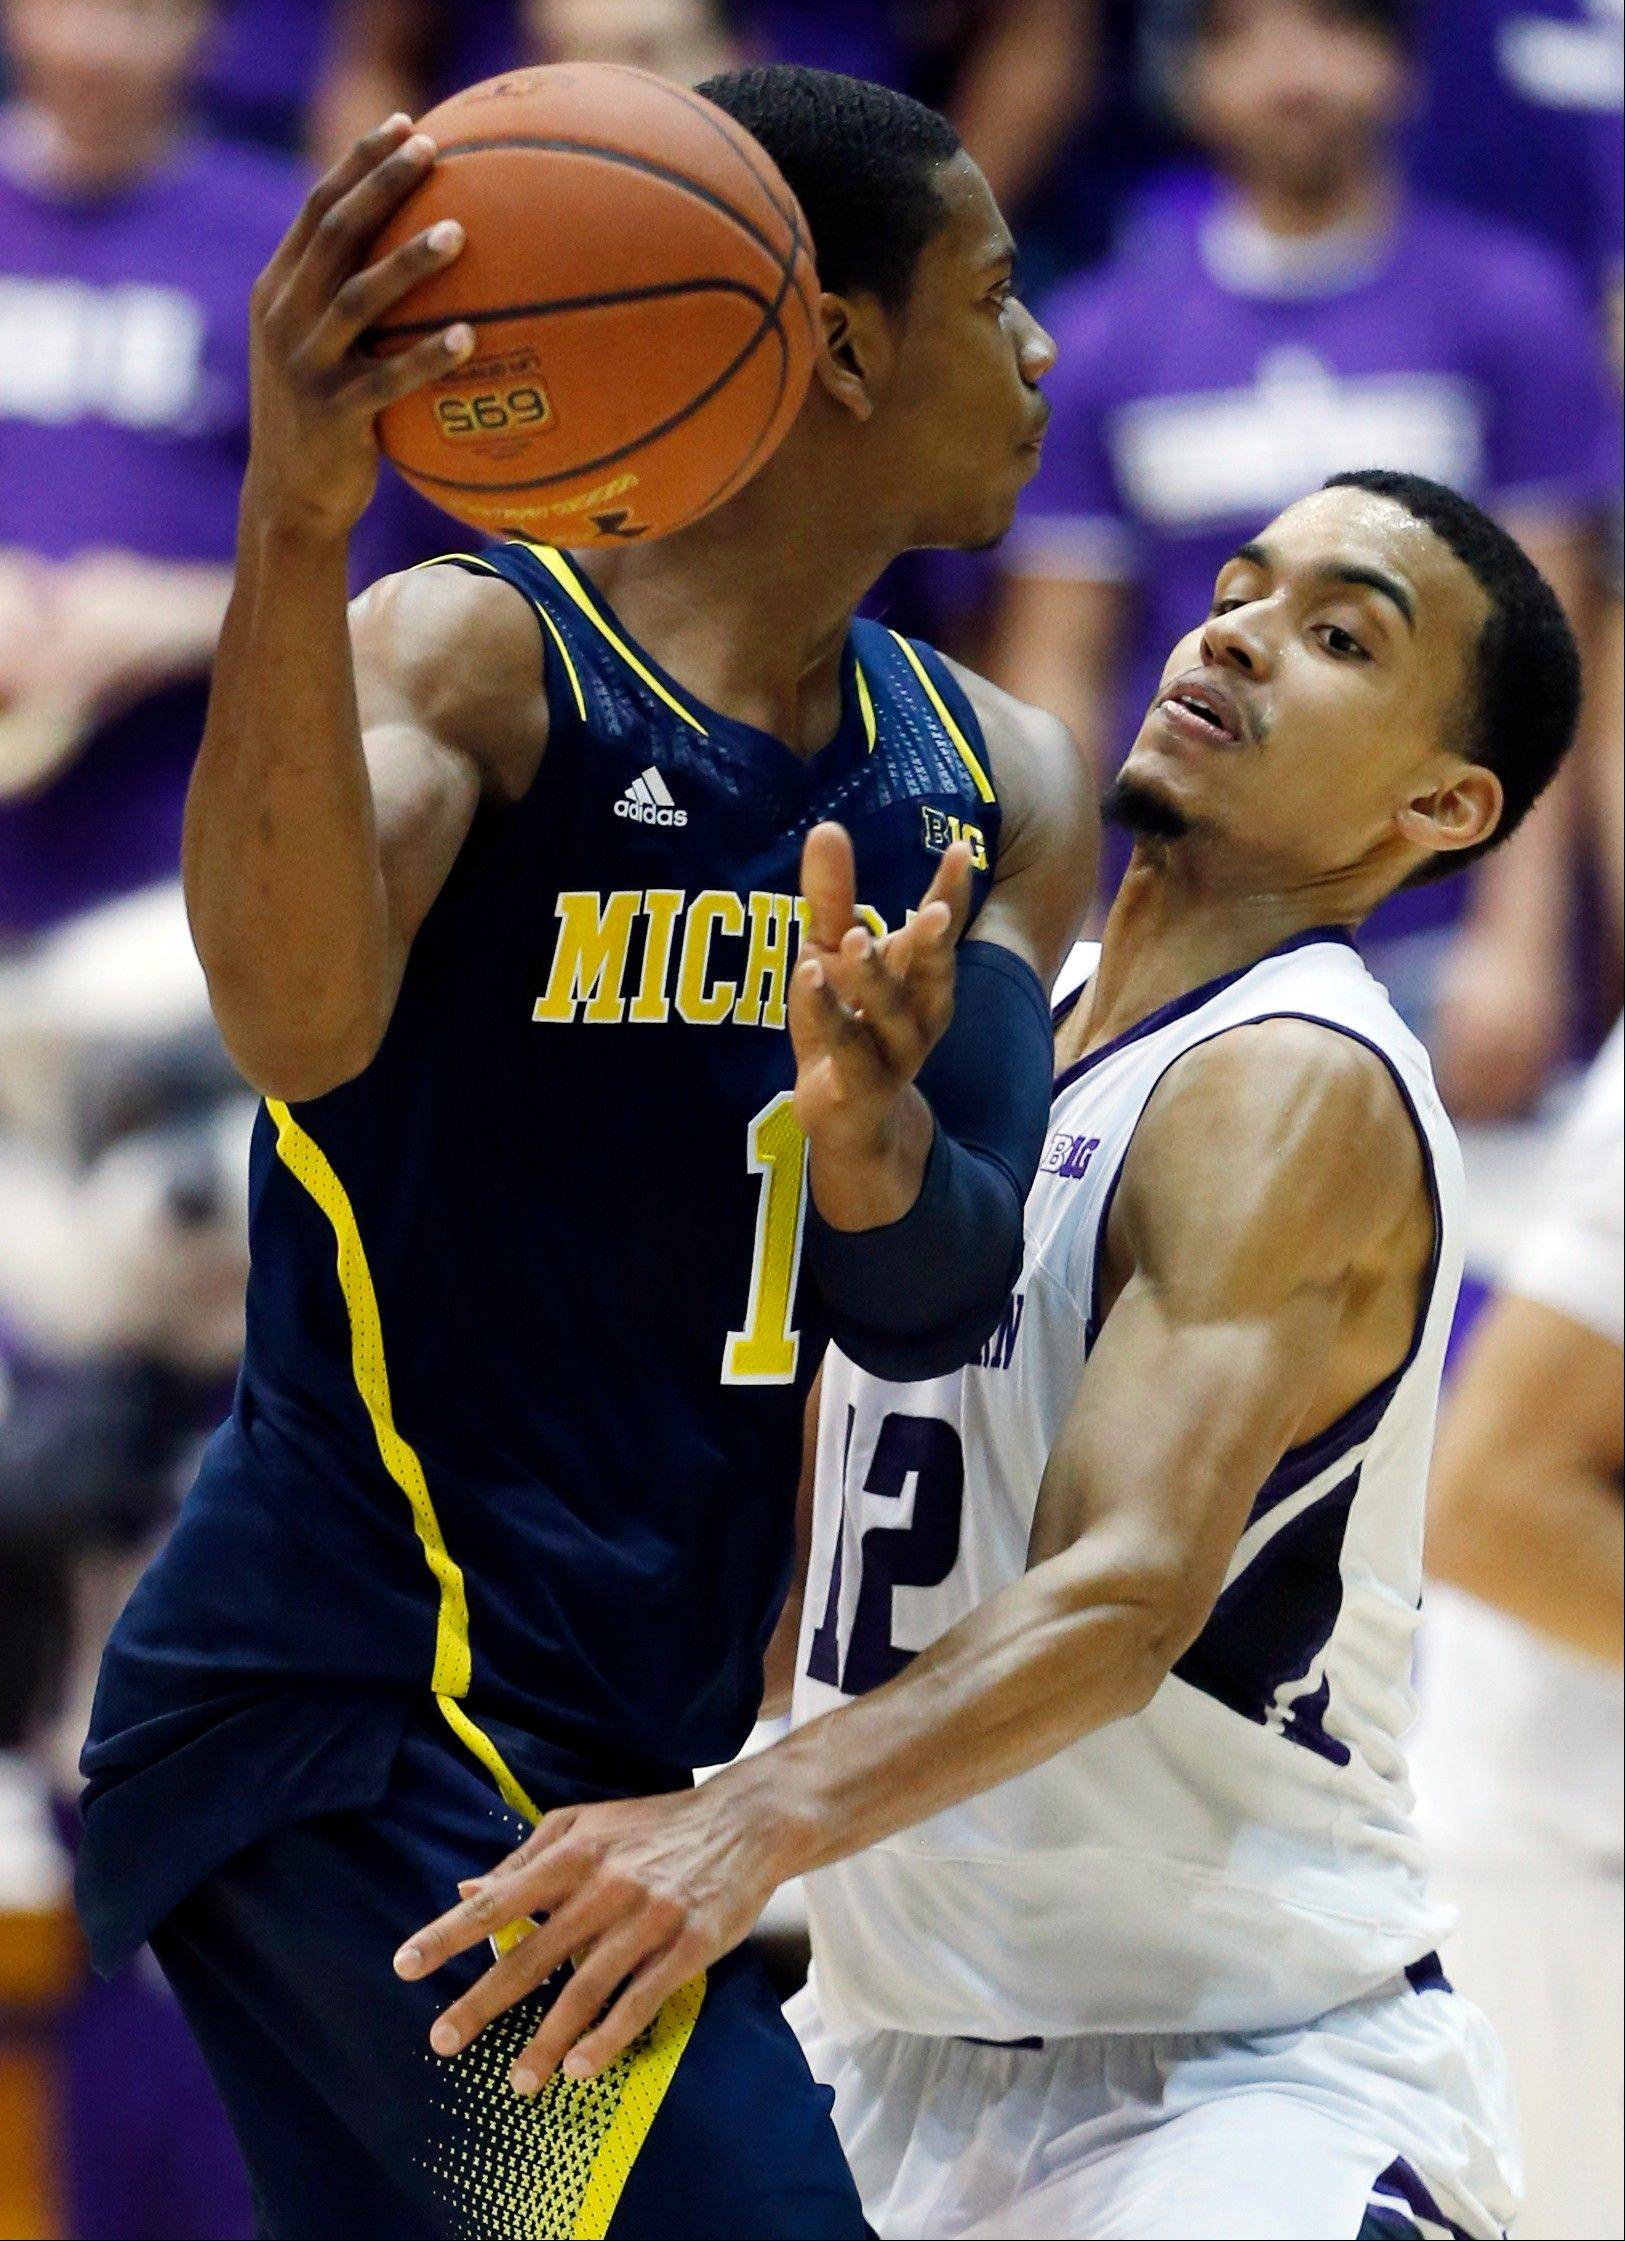 Northwestern forward Jared Swopshire, right, guards as Michigan forward Glenn Robinson III looks to pass during the second half of an NCAA college basketball game in Evanston, Ill., Thursday, Jan. 3, 2013. Michigan won 94-66. (AP Photo/Nam Y. Huh)